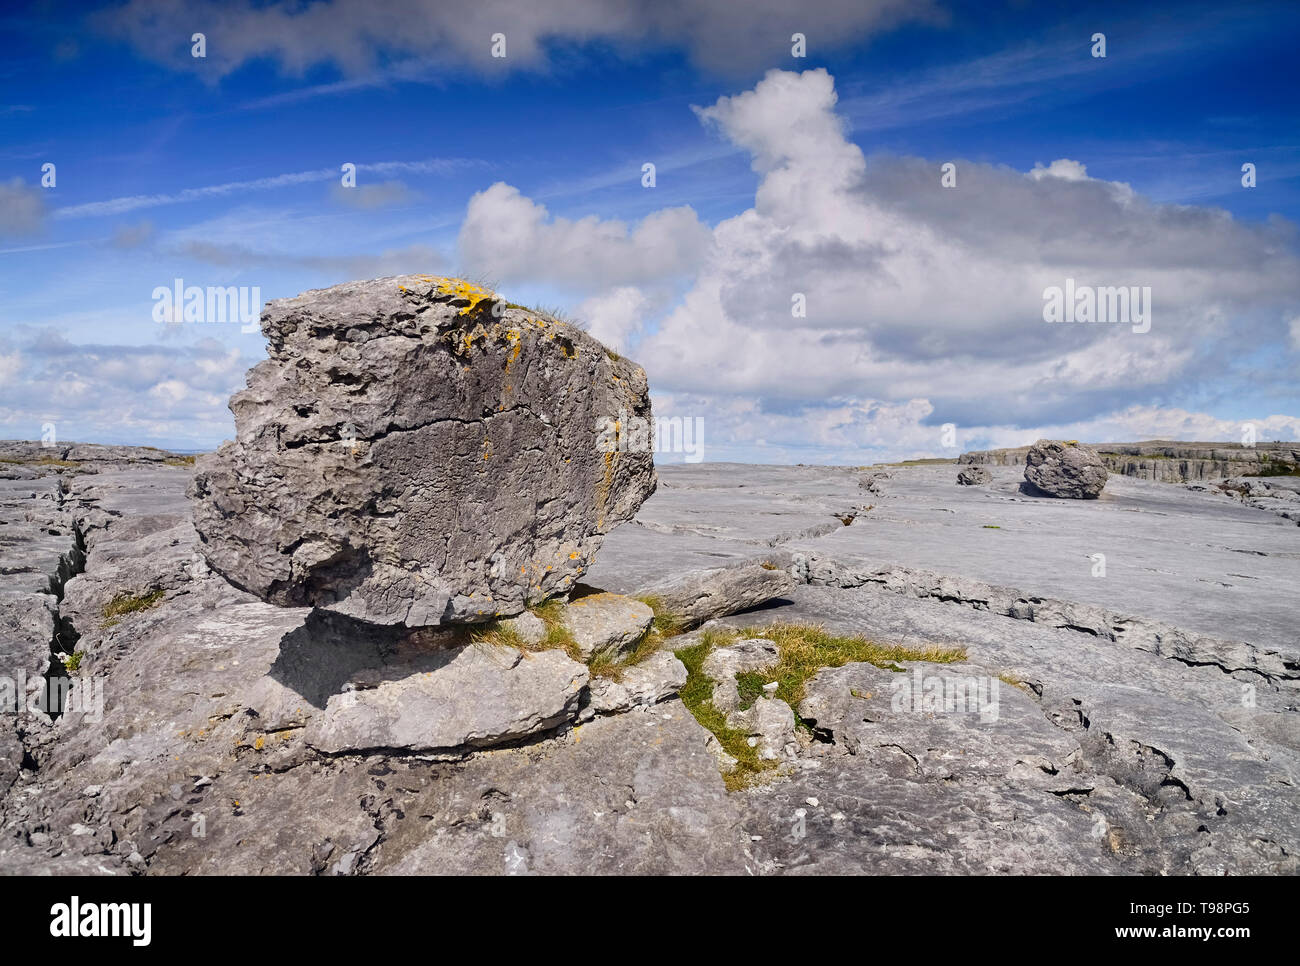 Ireland, County Clare, The Burren,  A single weathered rock sits on typical limestone landscape. - Stock Image